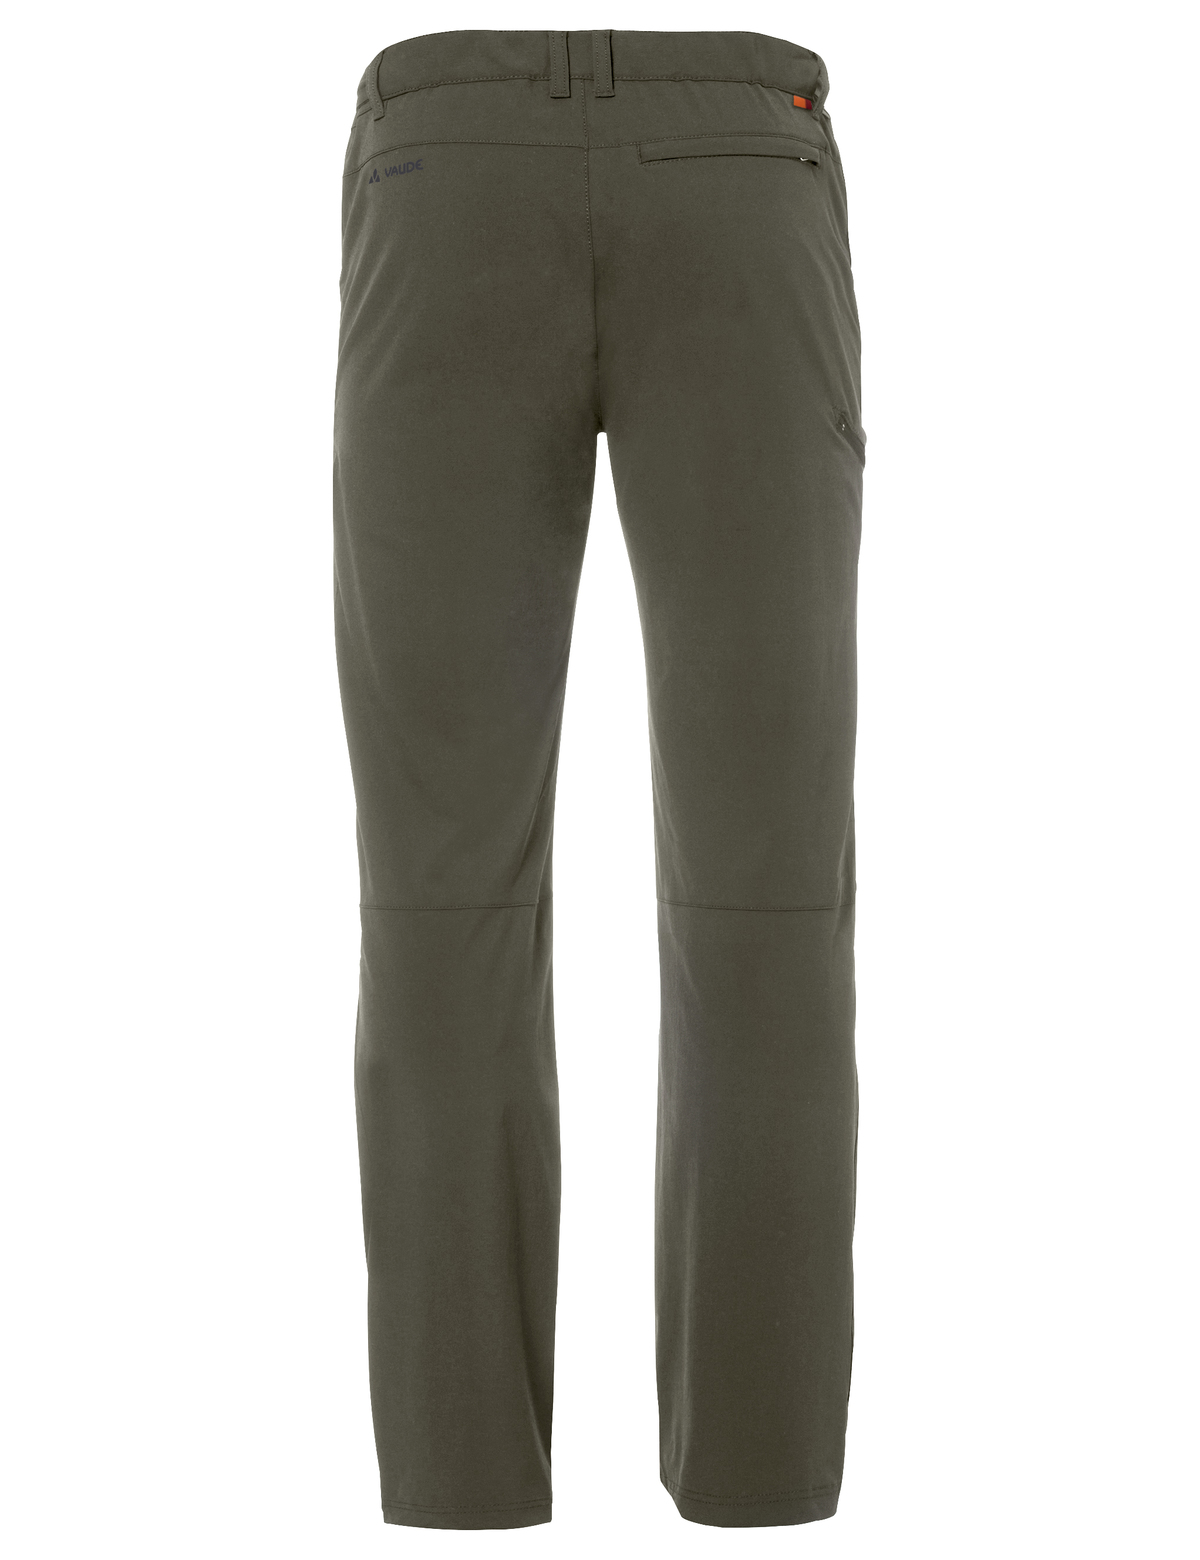 M's Farley Stretch Pants II